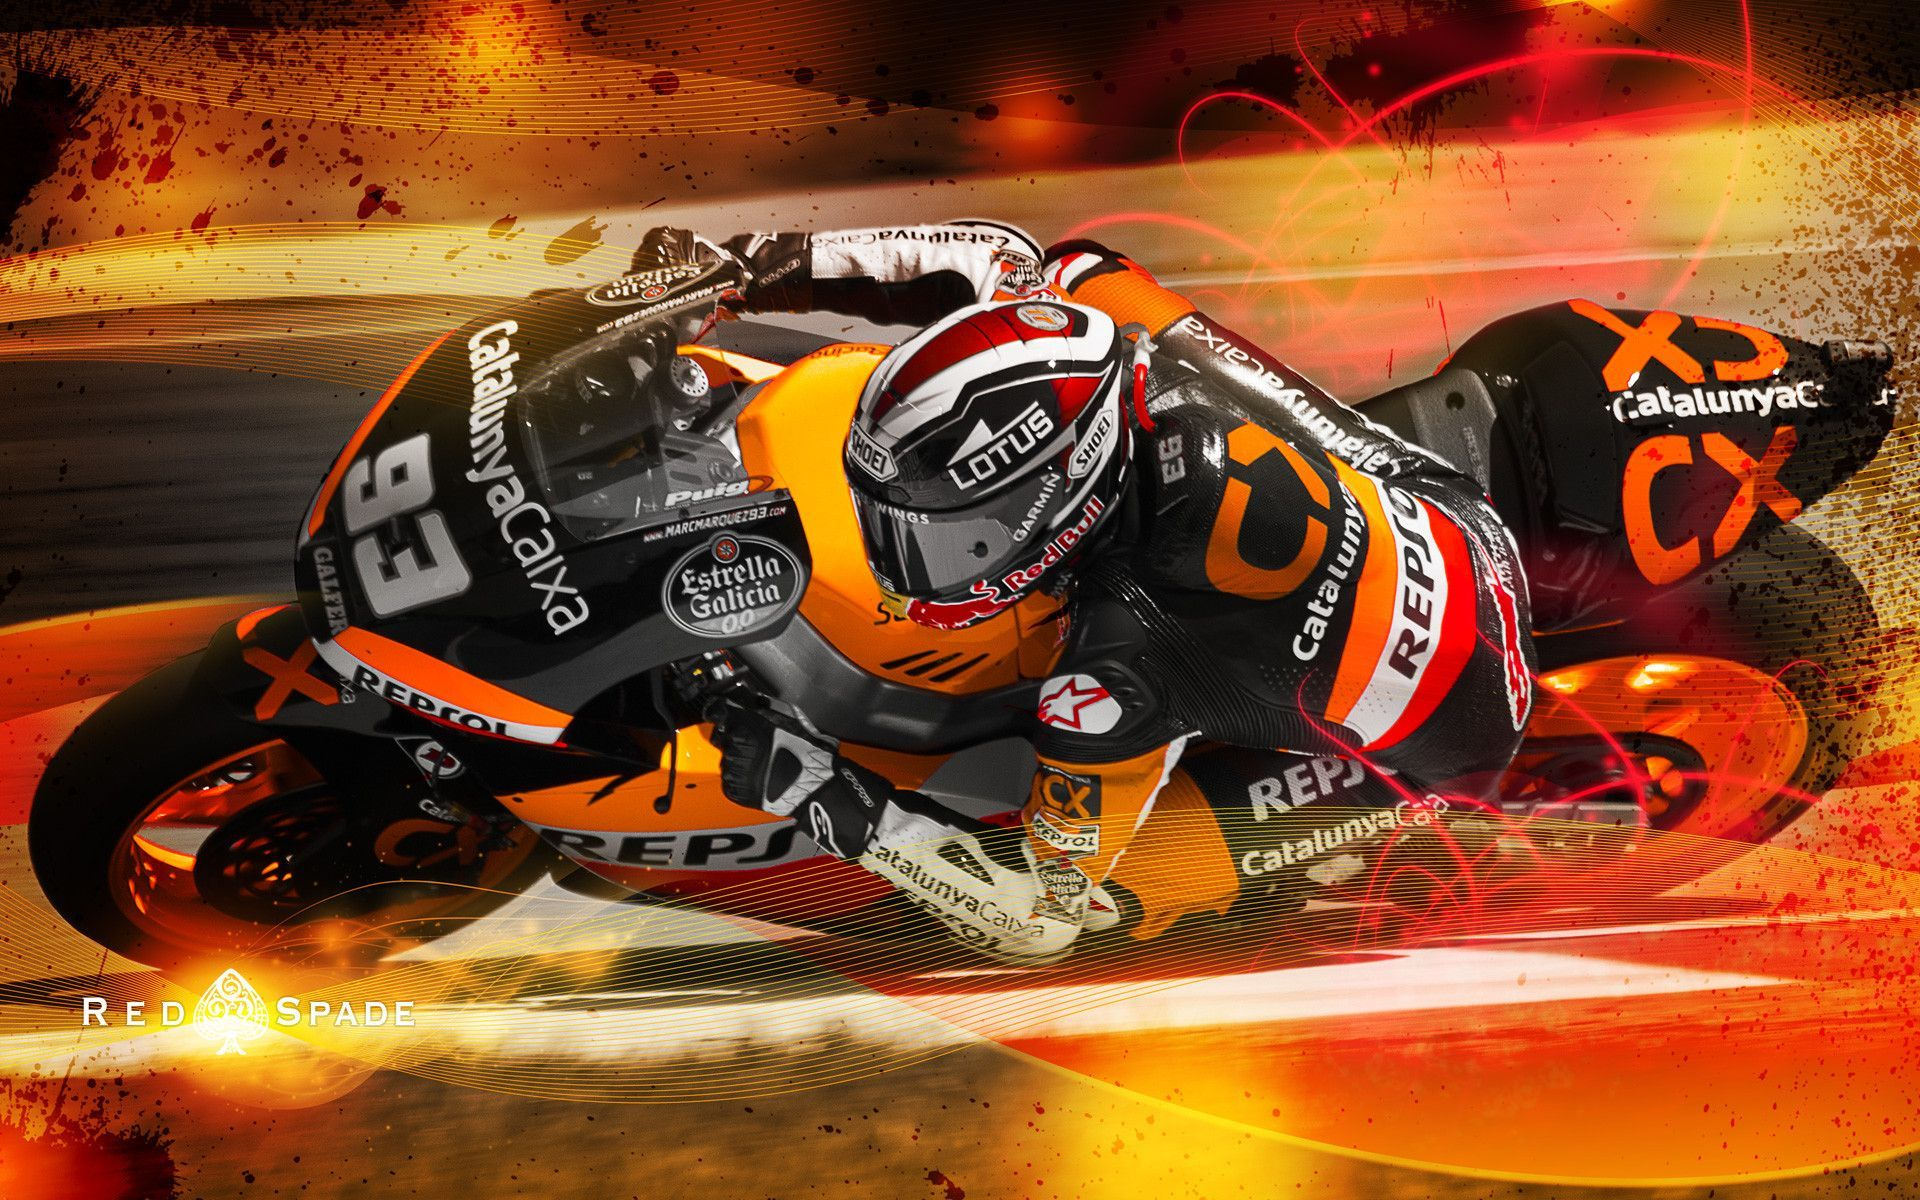 motogp-racing-wallpaper-background-hd-11